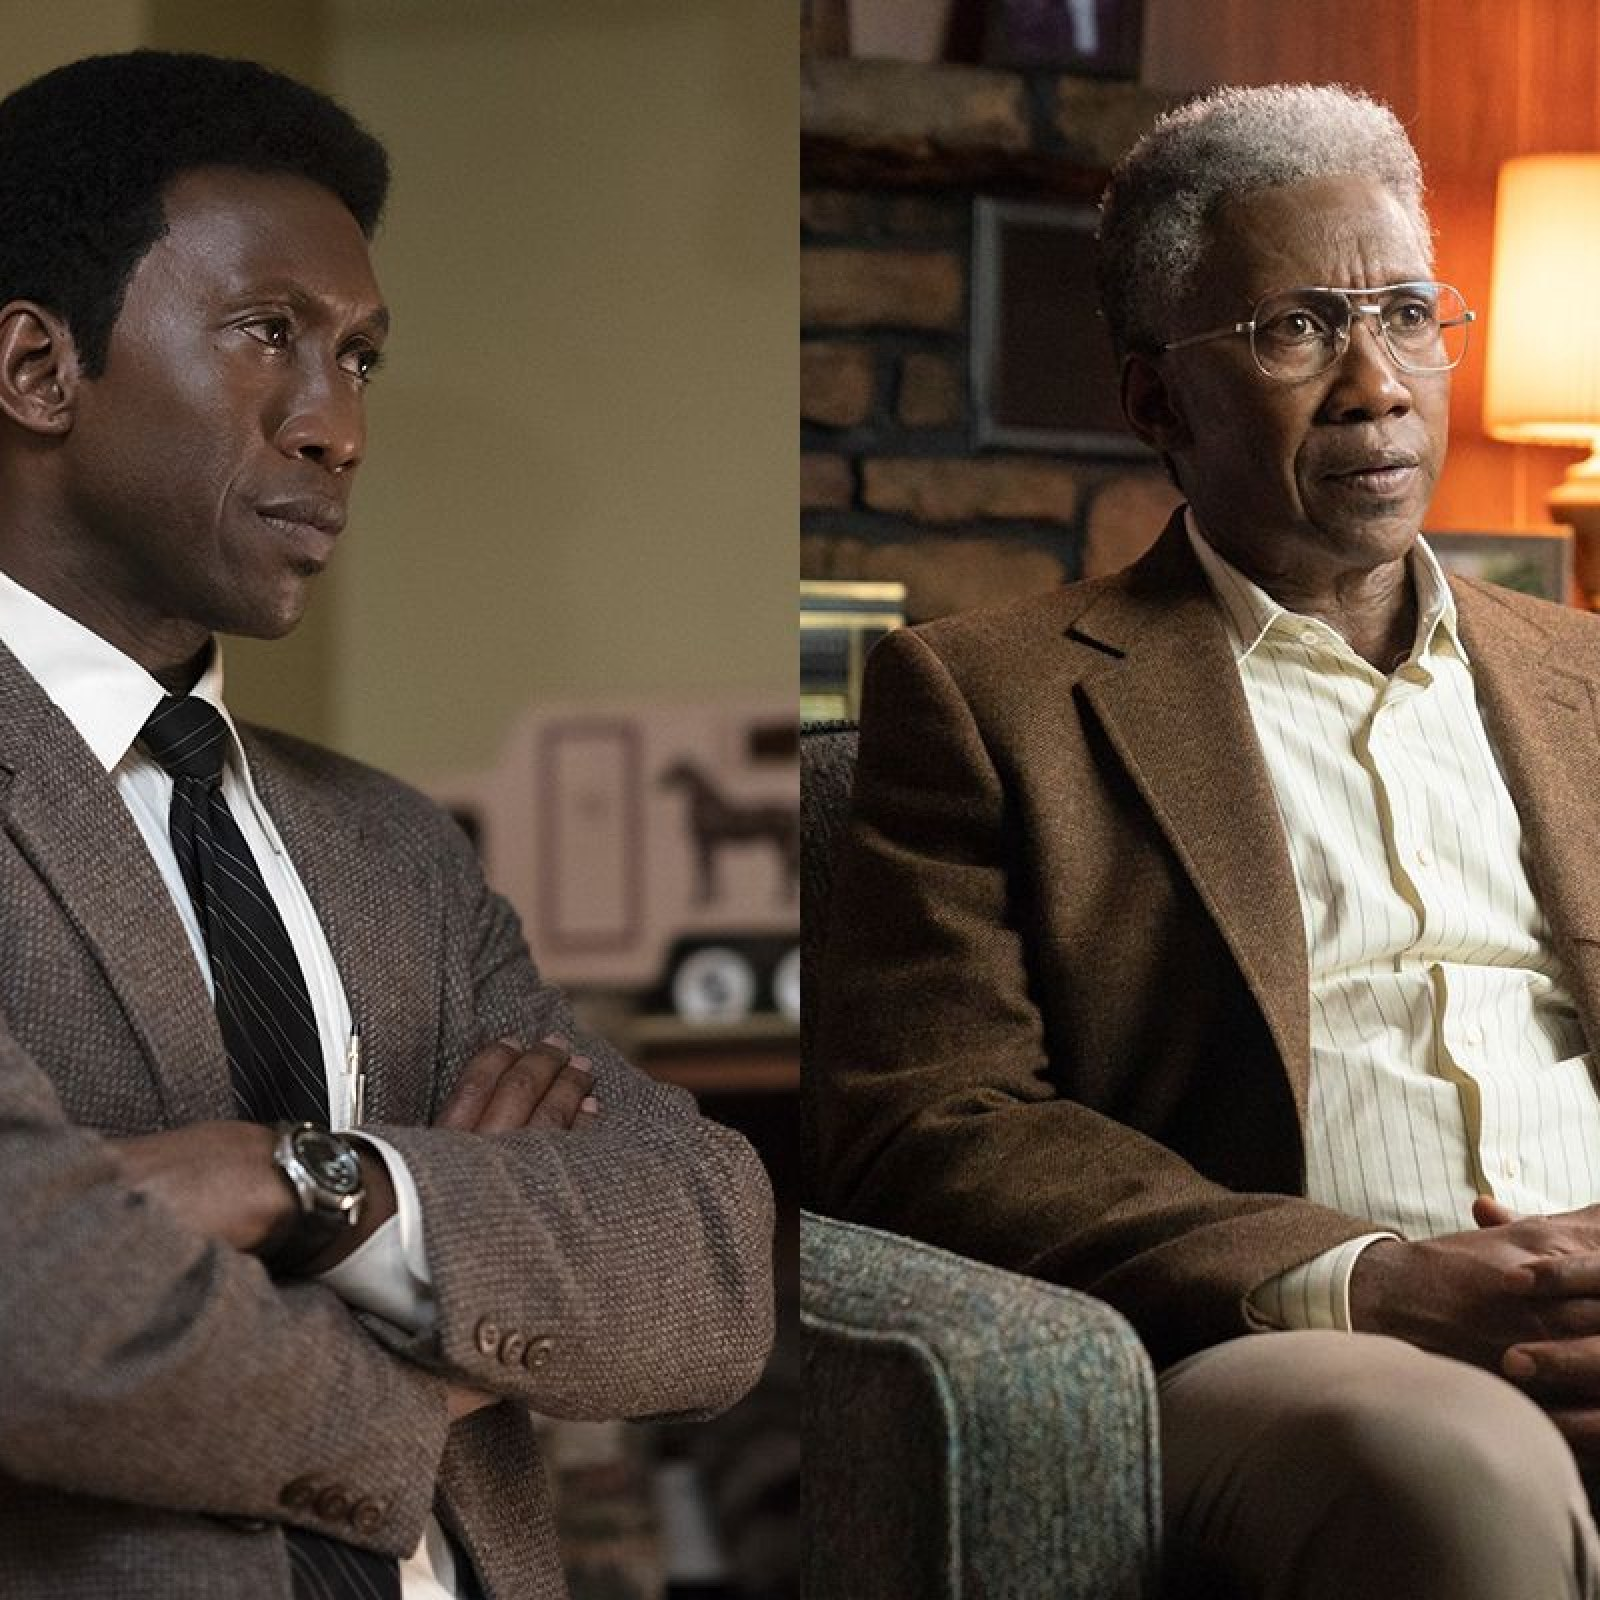 True Detective' Season 3 Finale Theories: Who Is The Killer?